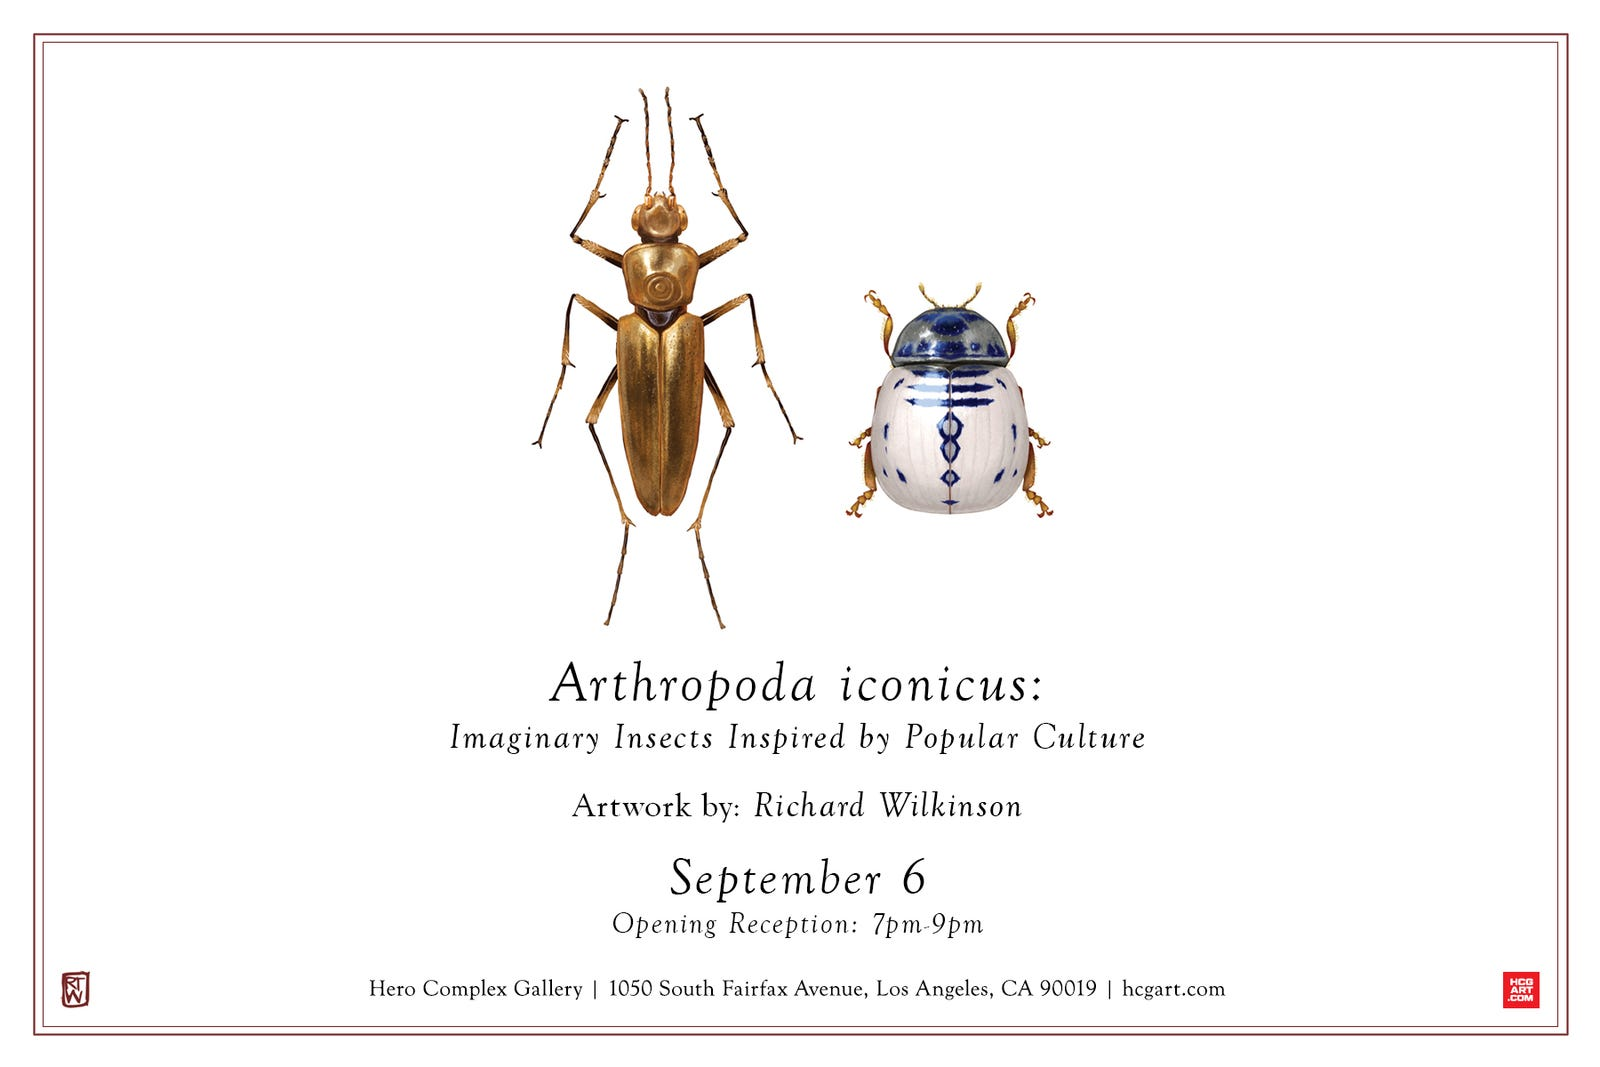 The show card for 'Arthropoda iconicus' featuring two very famous Star Wars characters...as bugs.